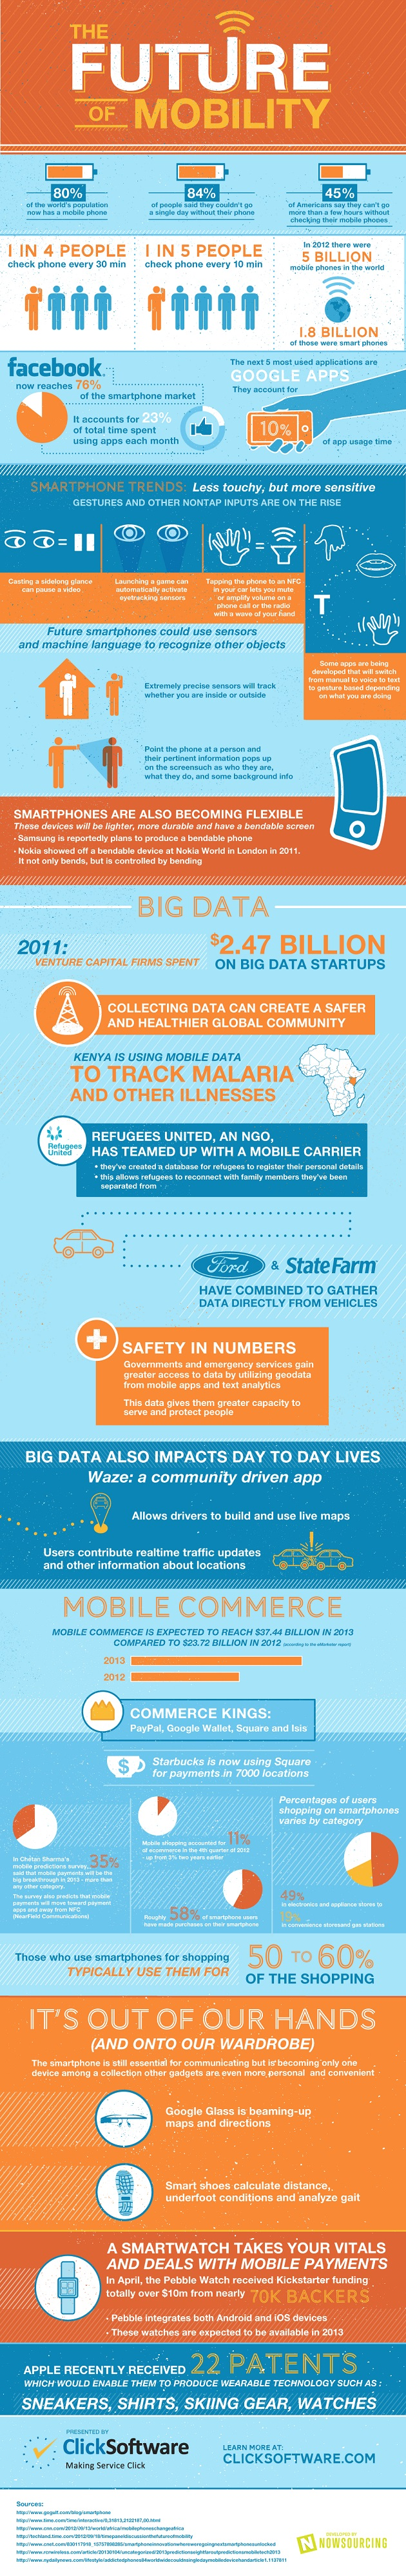 389361-infographic-the-future-of-mobility